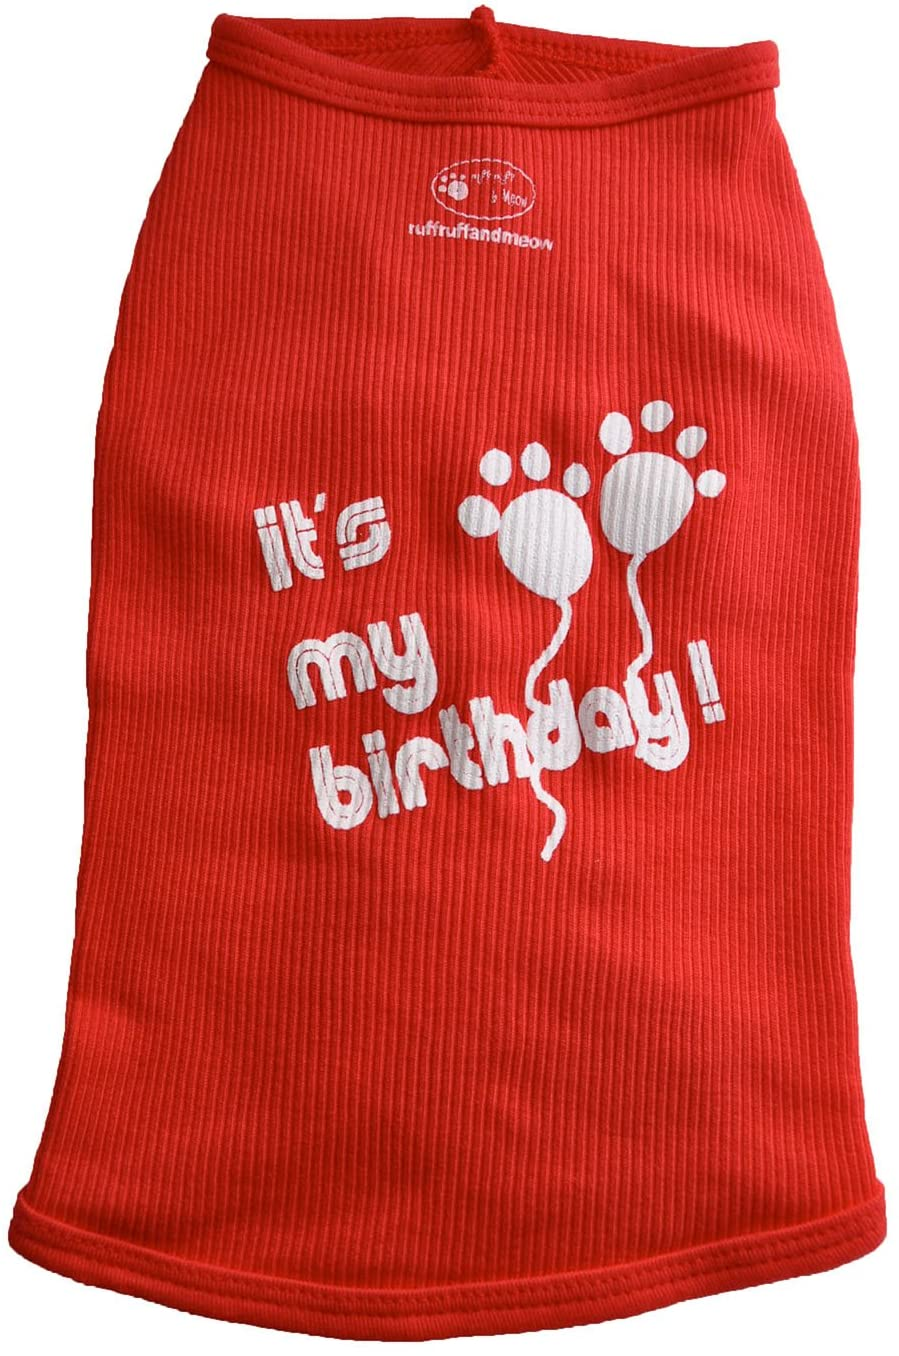 Ruff Ruff and Meow Dog Tank Top, Its My Birthday, Red, Small